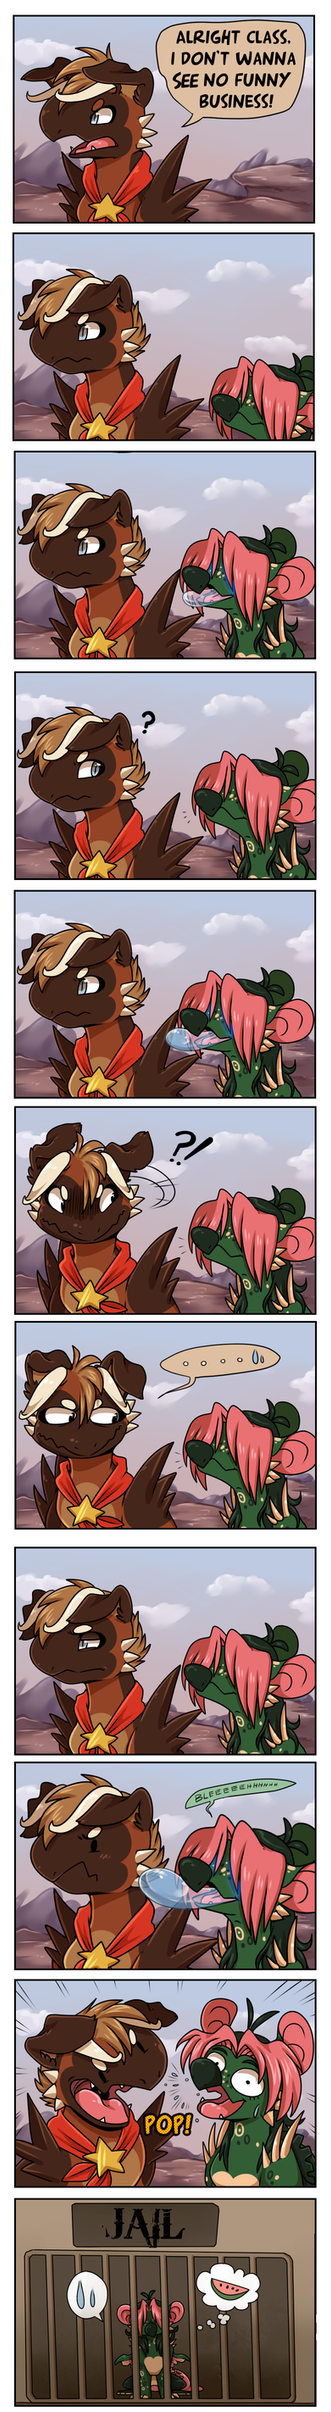 Wyngro Comic 3: Don't piss off the cops by Nestly